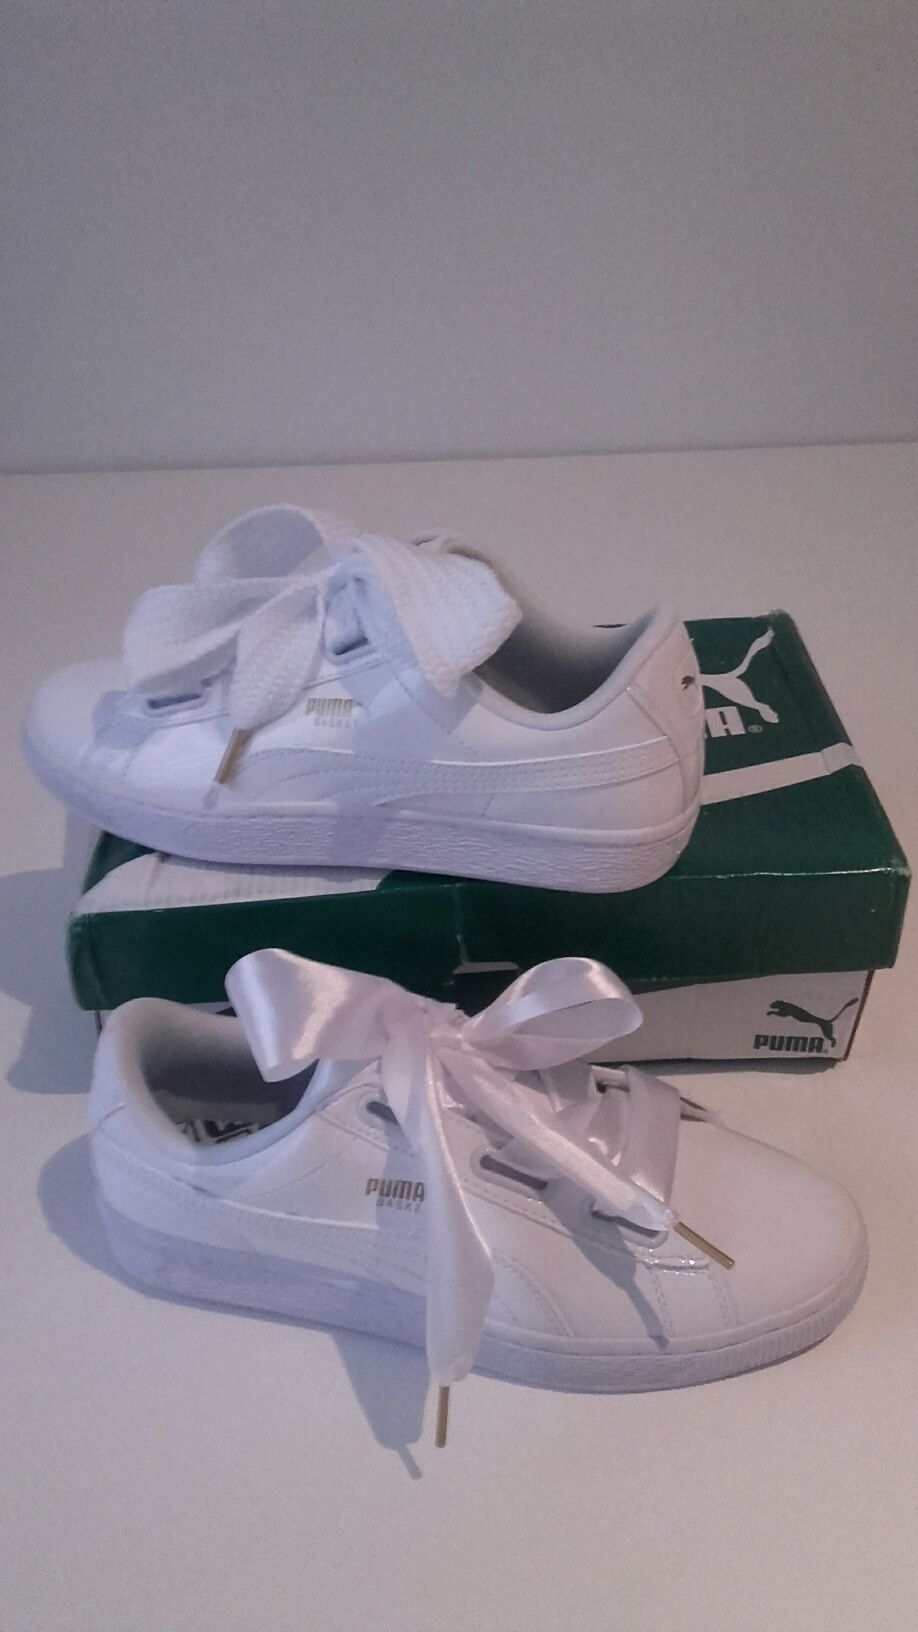 Puma Basket Heart Available Sizes 35 Until 40 Price 62 And Shipping Costs